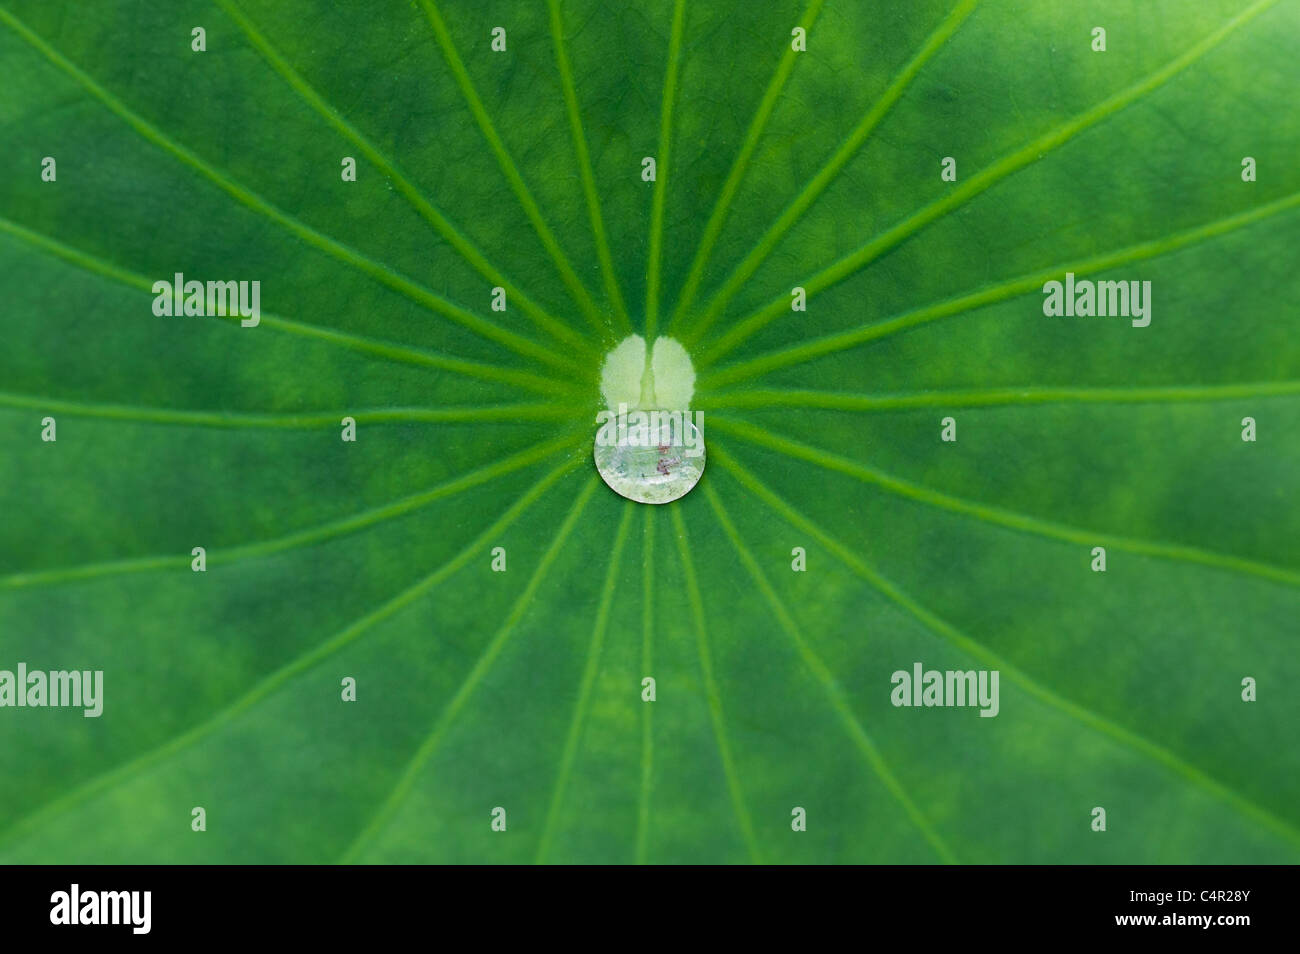 Nelumbo nucifera leaf. Water drop on a Lotus leaf. - Stock Image